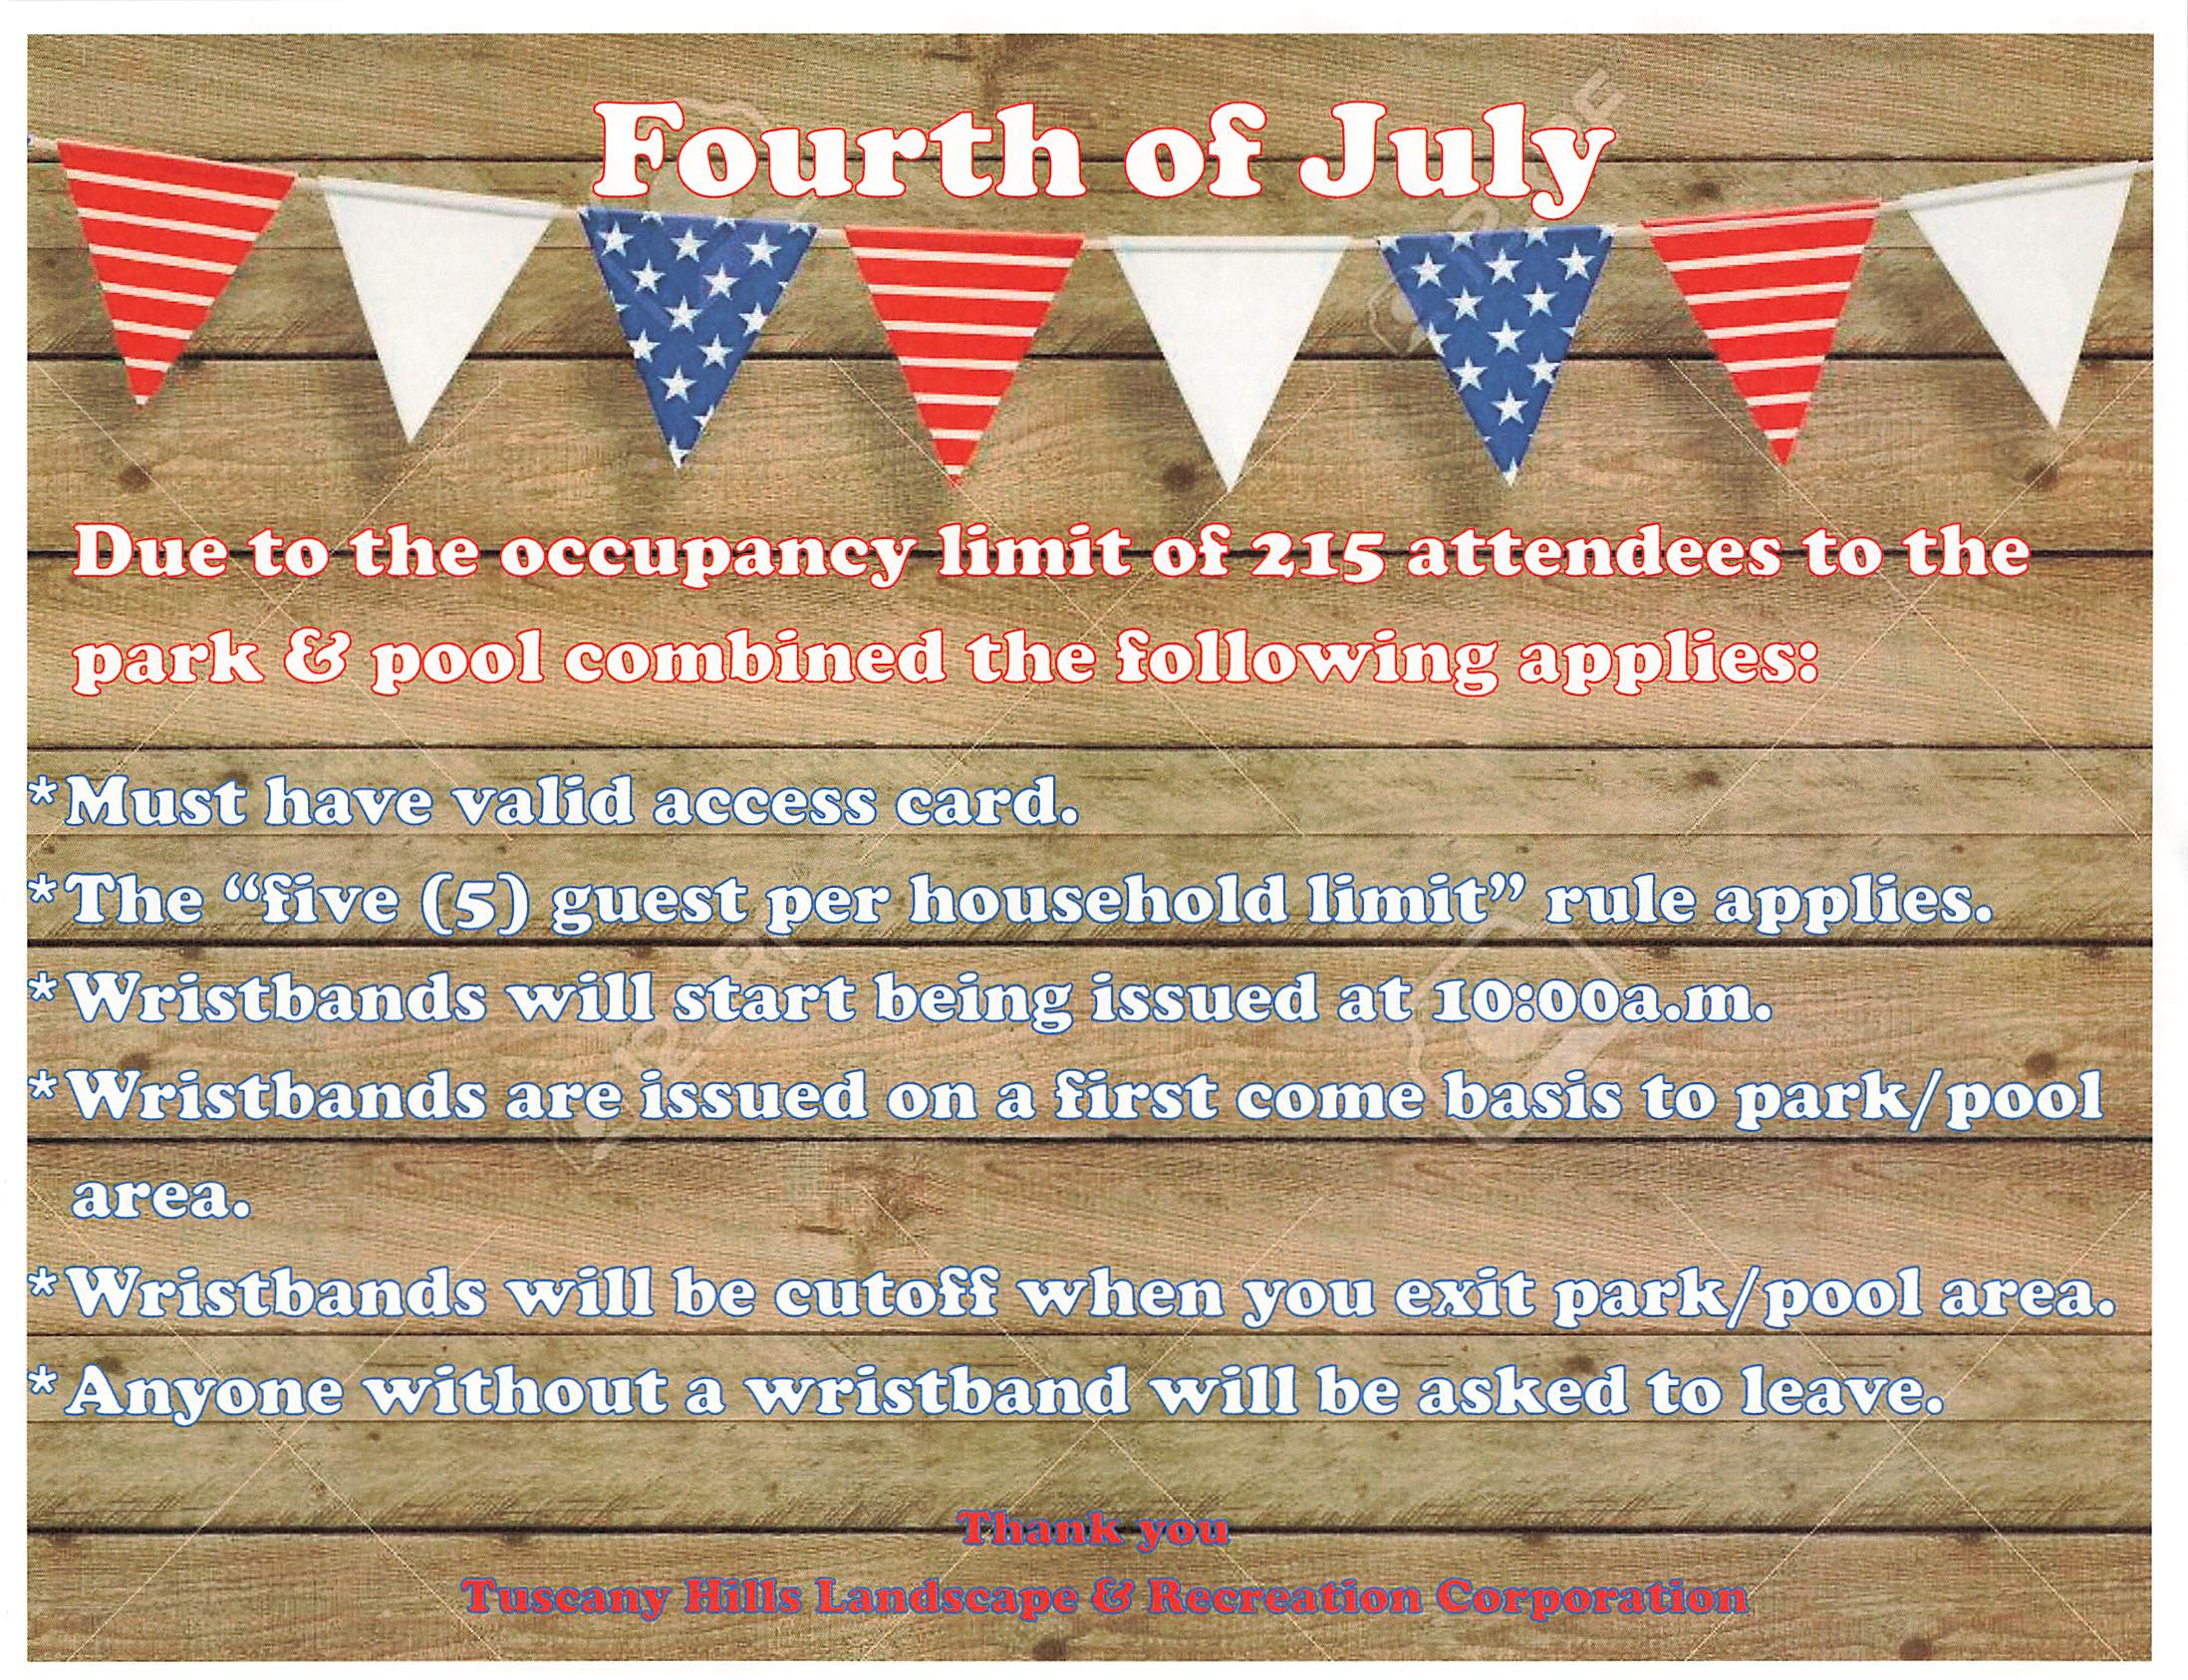 Tuscany Hills 4th of July event flyer for 2021.